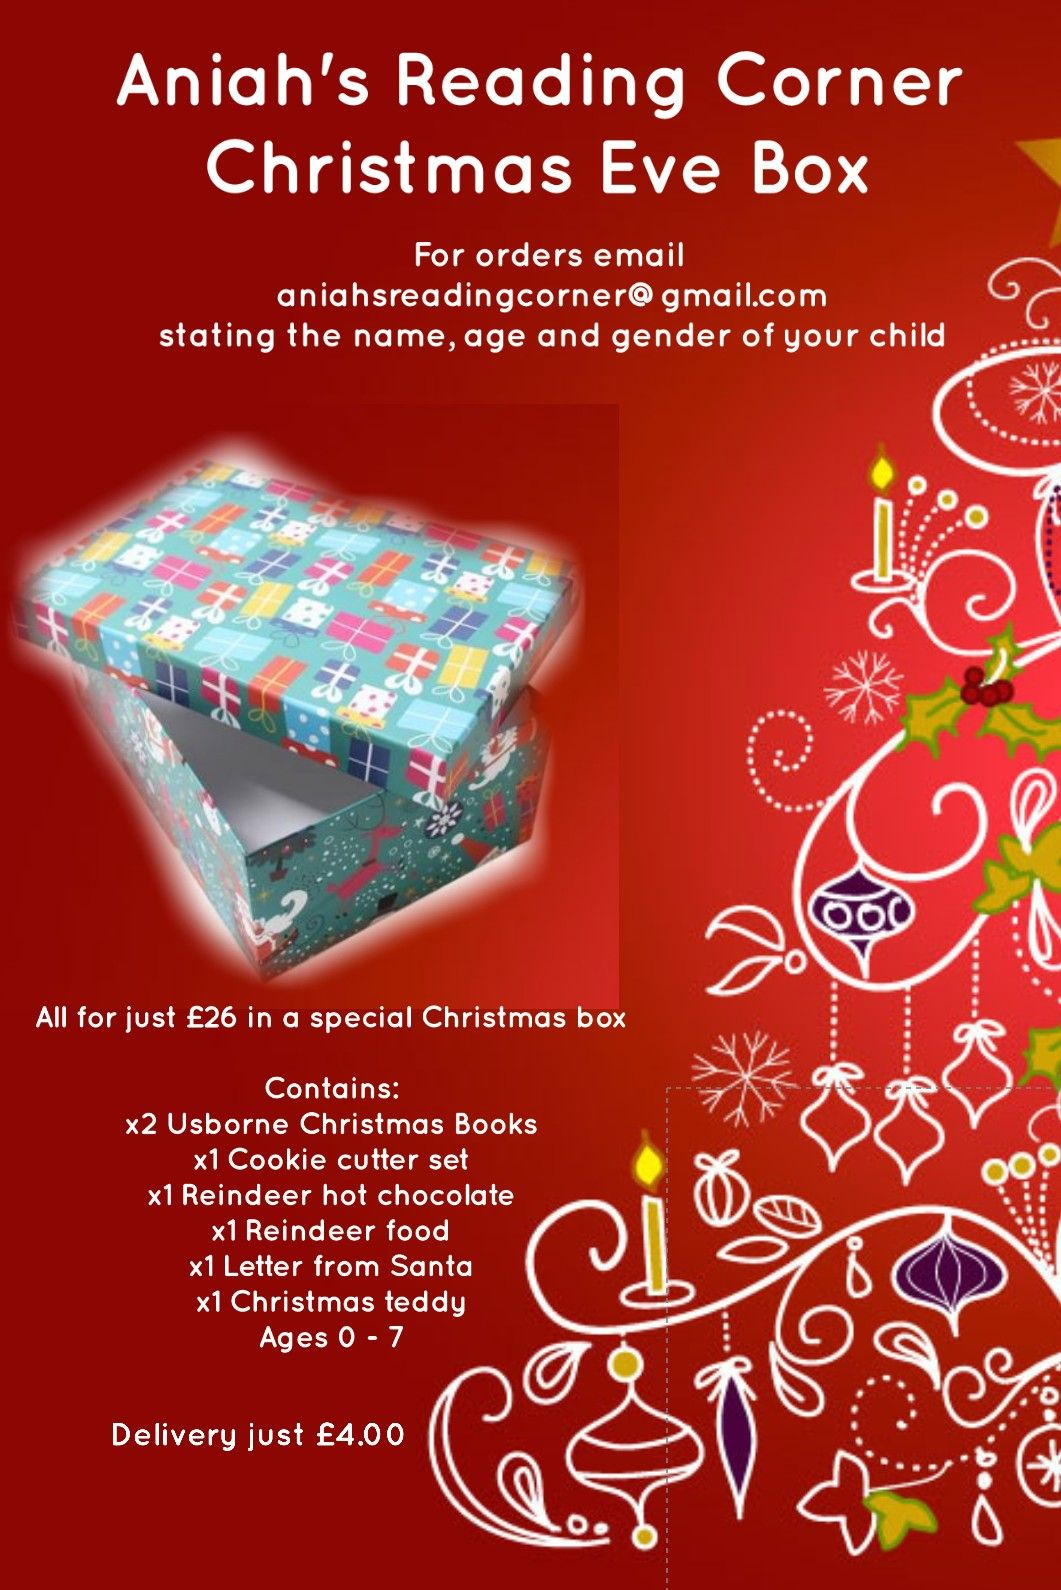 A Discount Can Be Offered For Multiple Christmas Eve Boxes